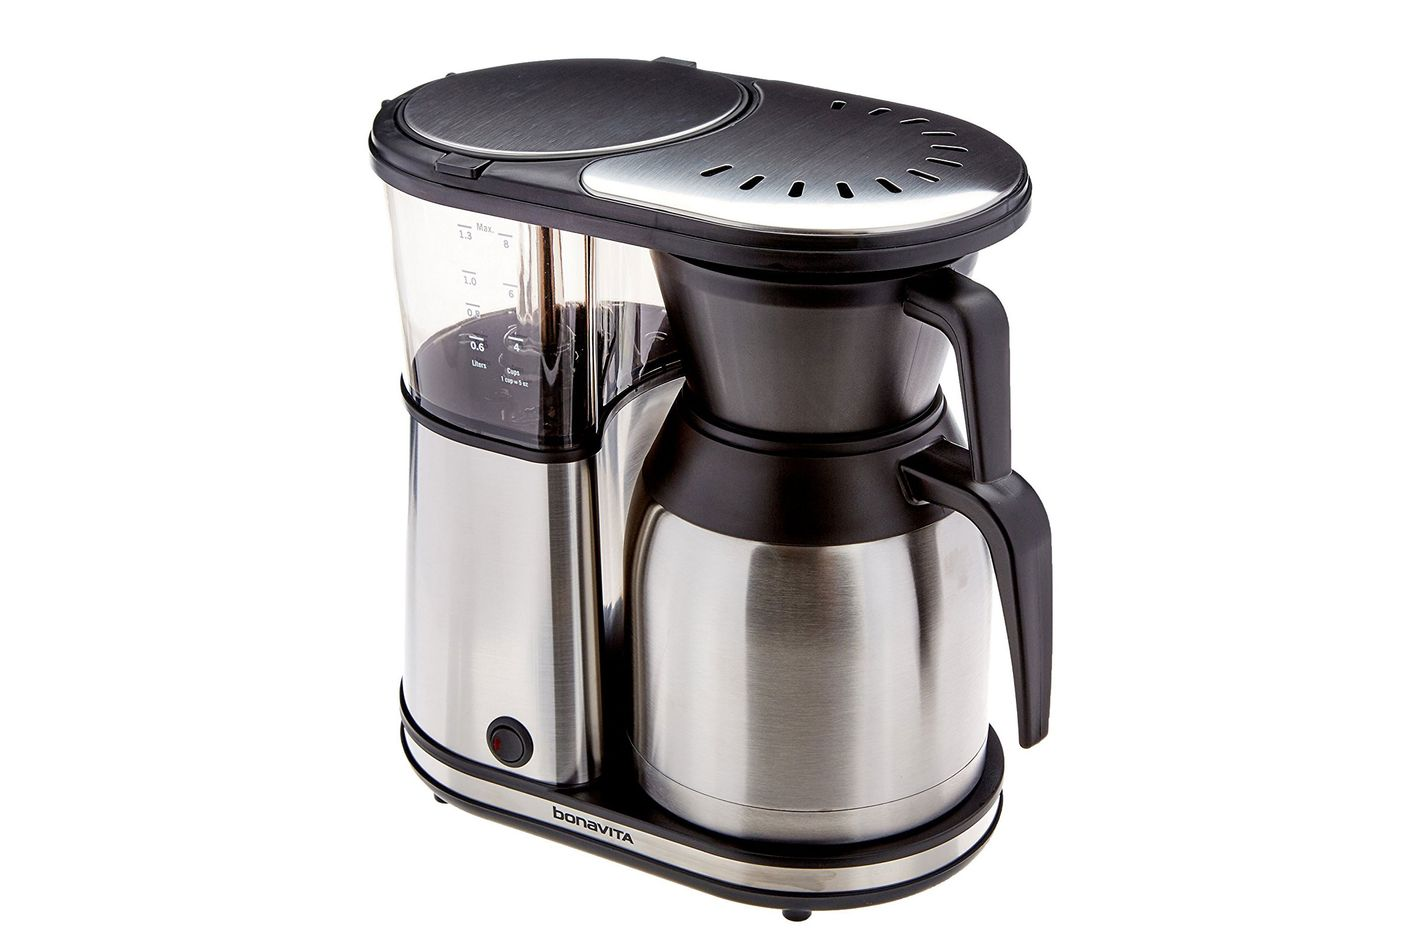 Coffee Maker Rumahan : Best Ideas to Spend Tax Refund on Popular Strategist Items